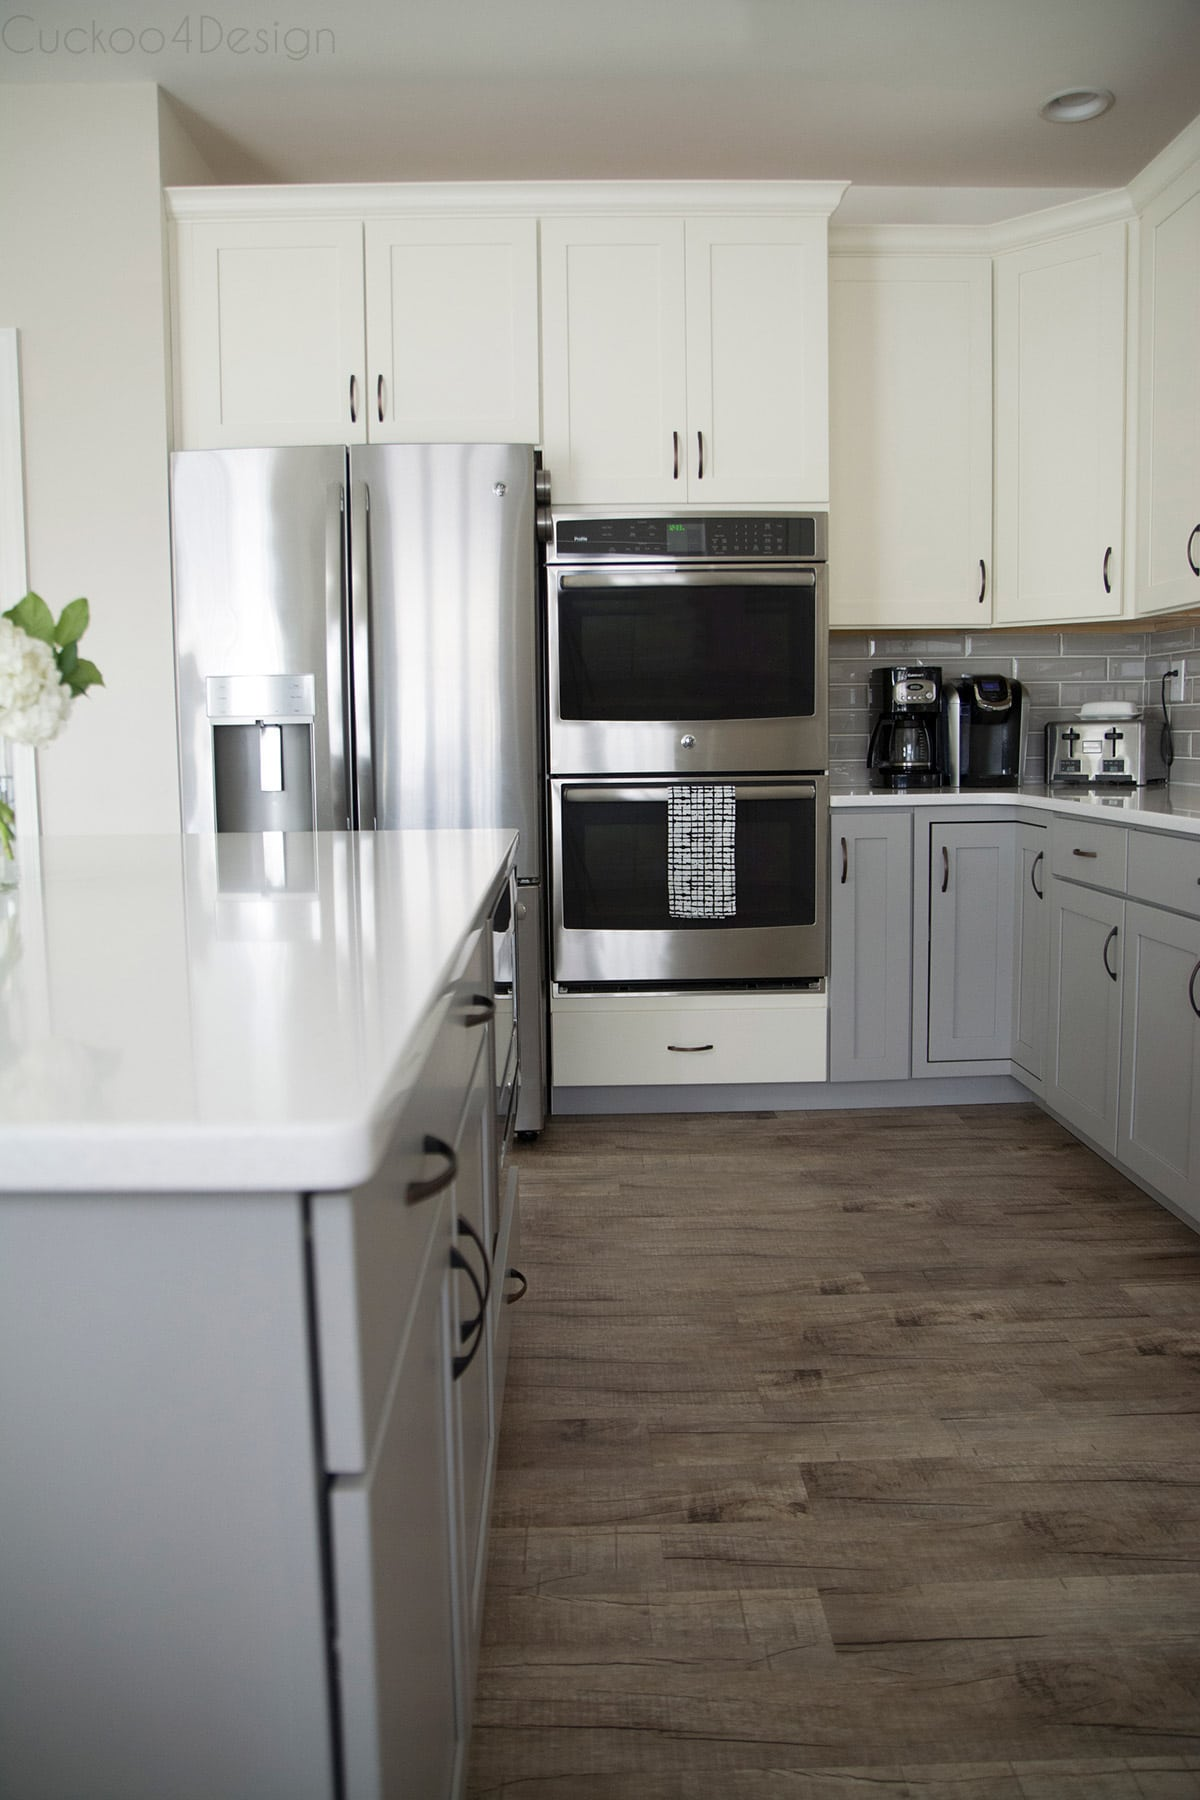 GE stainless steel kitchen appliances in white and grey kitchen